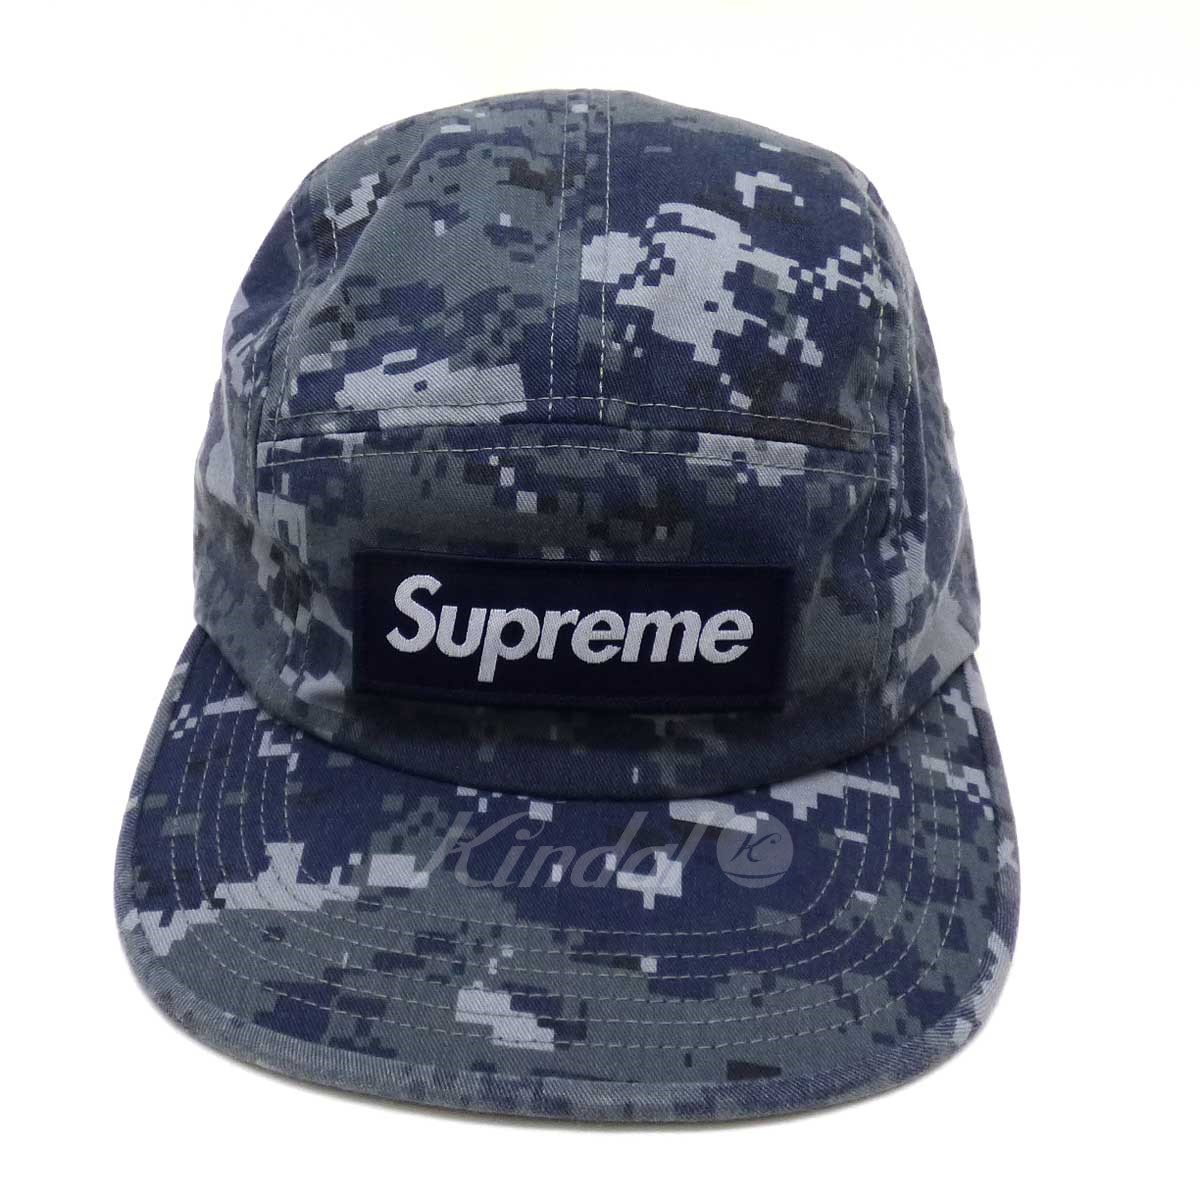 【中古】SUPREME NYCO Twill Camp Cap 2017A/W 【送料無料】 【083763】 【KT1321】 【返品不可】